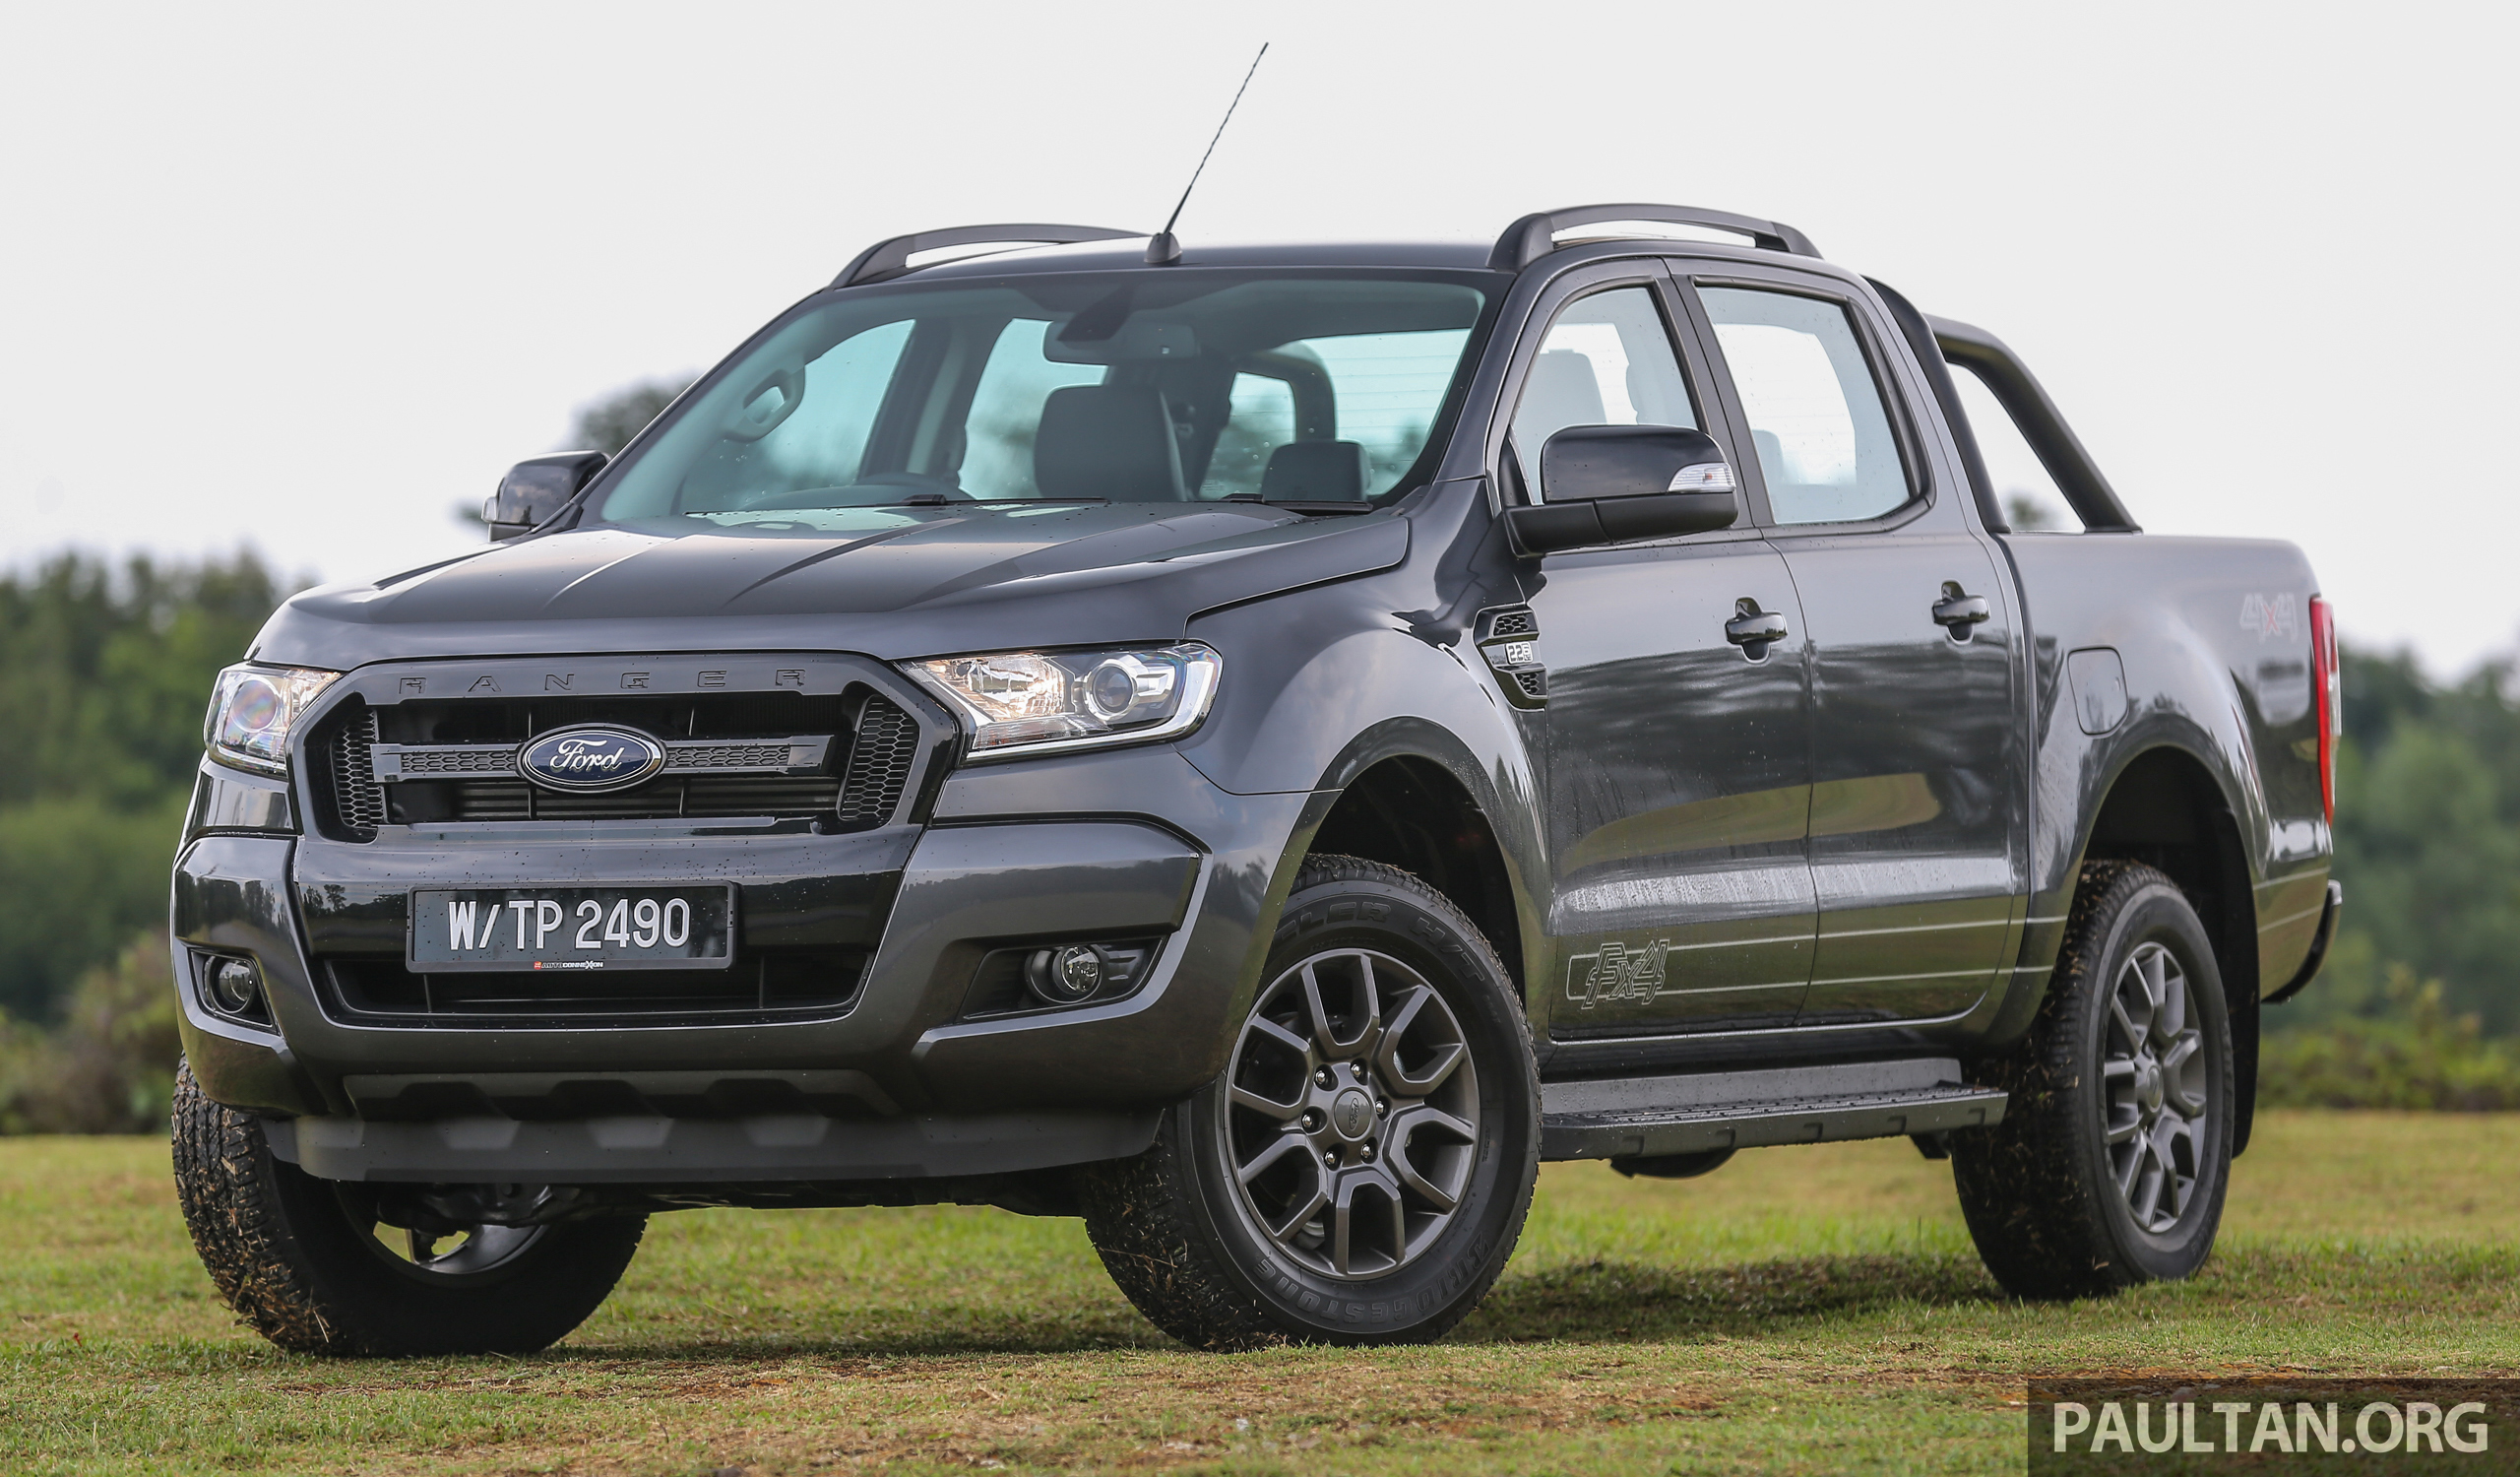 ford ranger 2 2l fx4 coming april 20 rm122k est. Black Bedroom Furniture Sets. Home Design Ideas